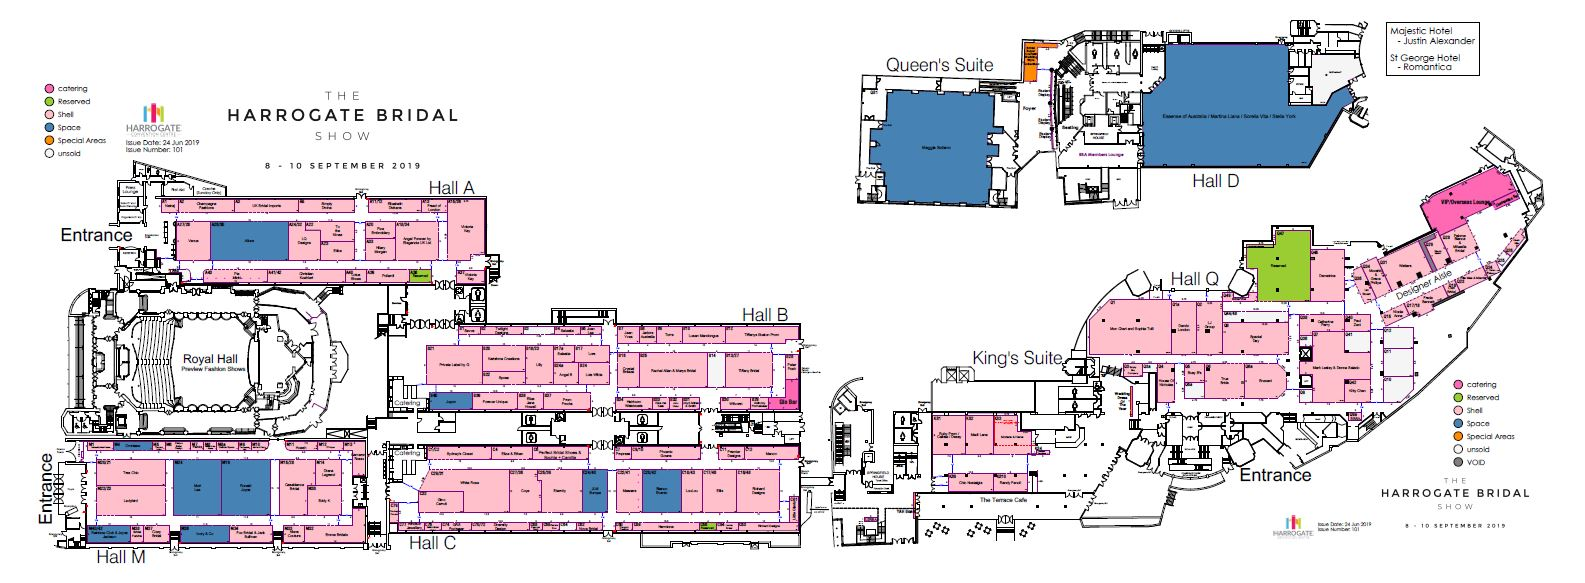 Harrogate Bridal Show floorplan